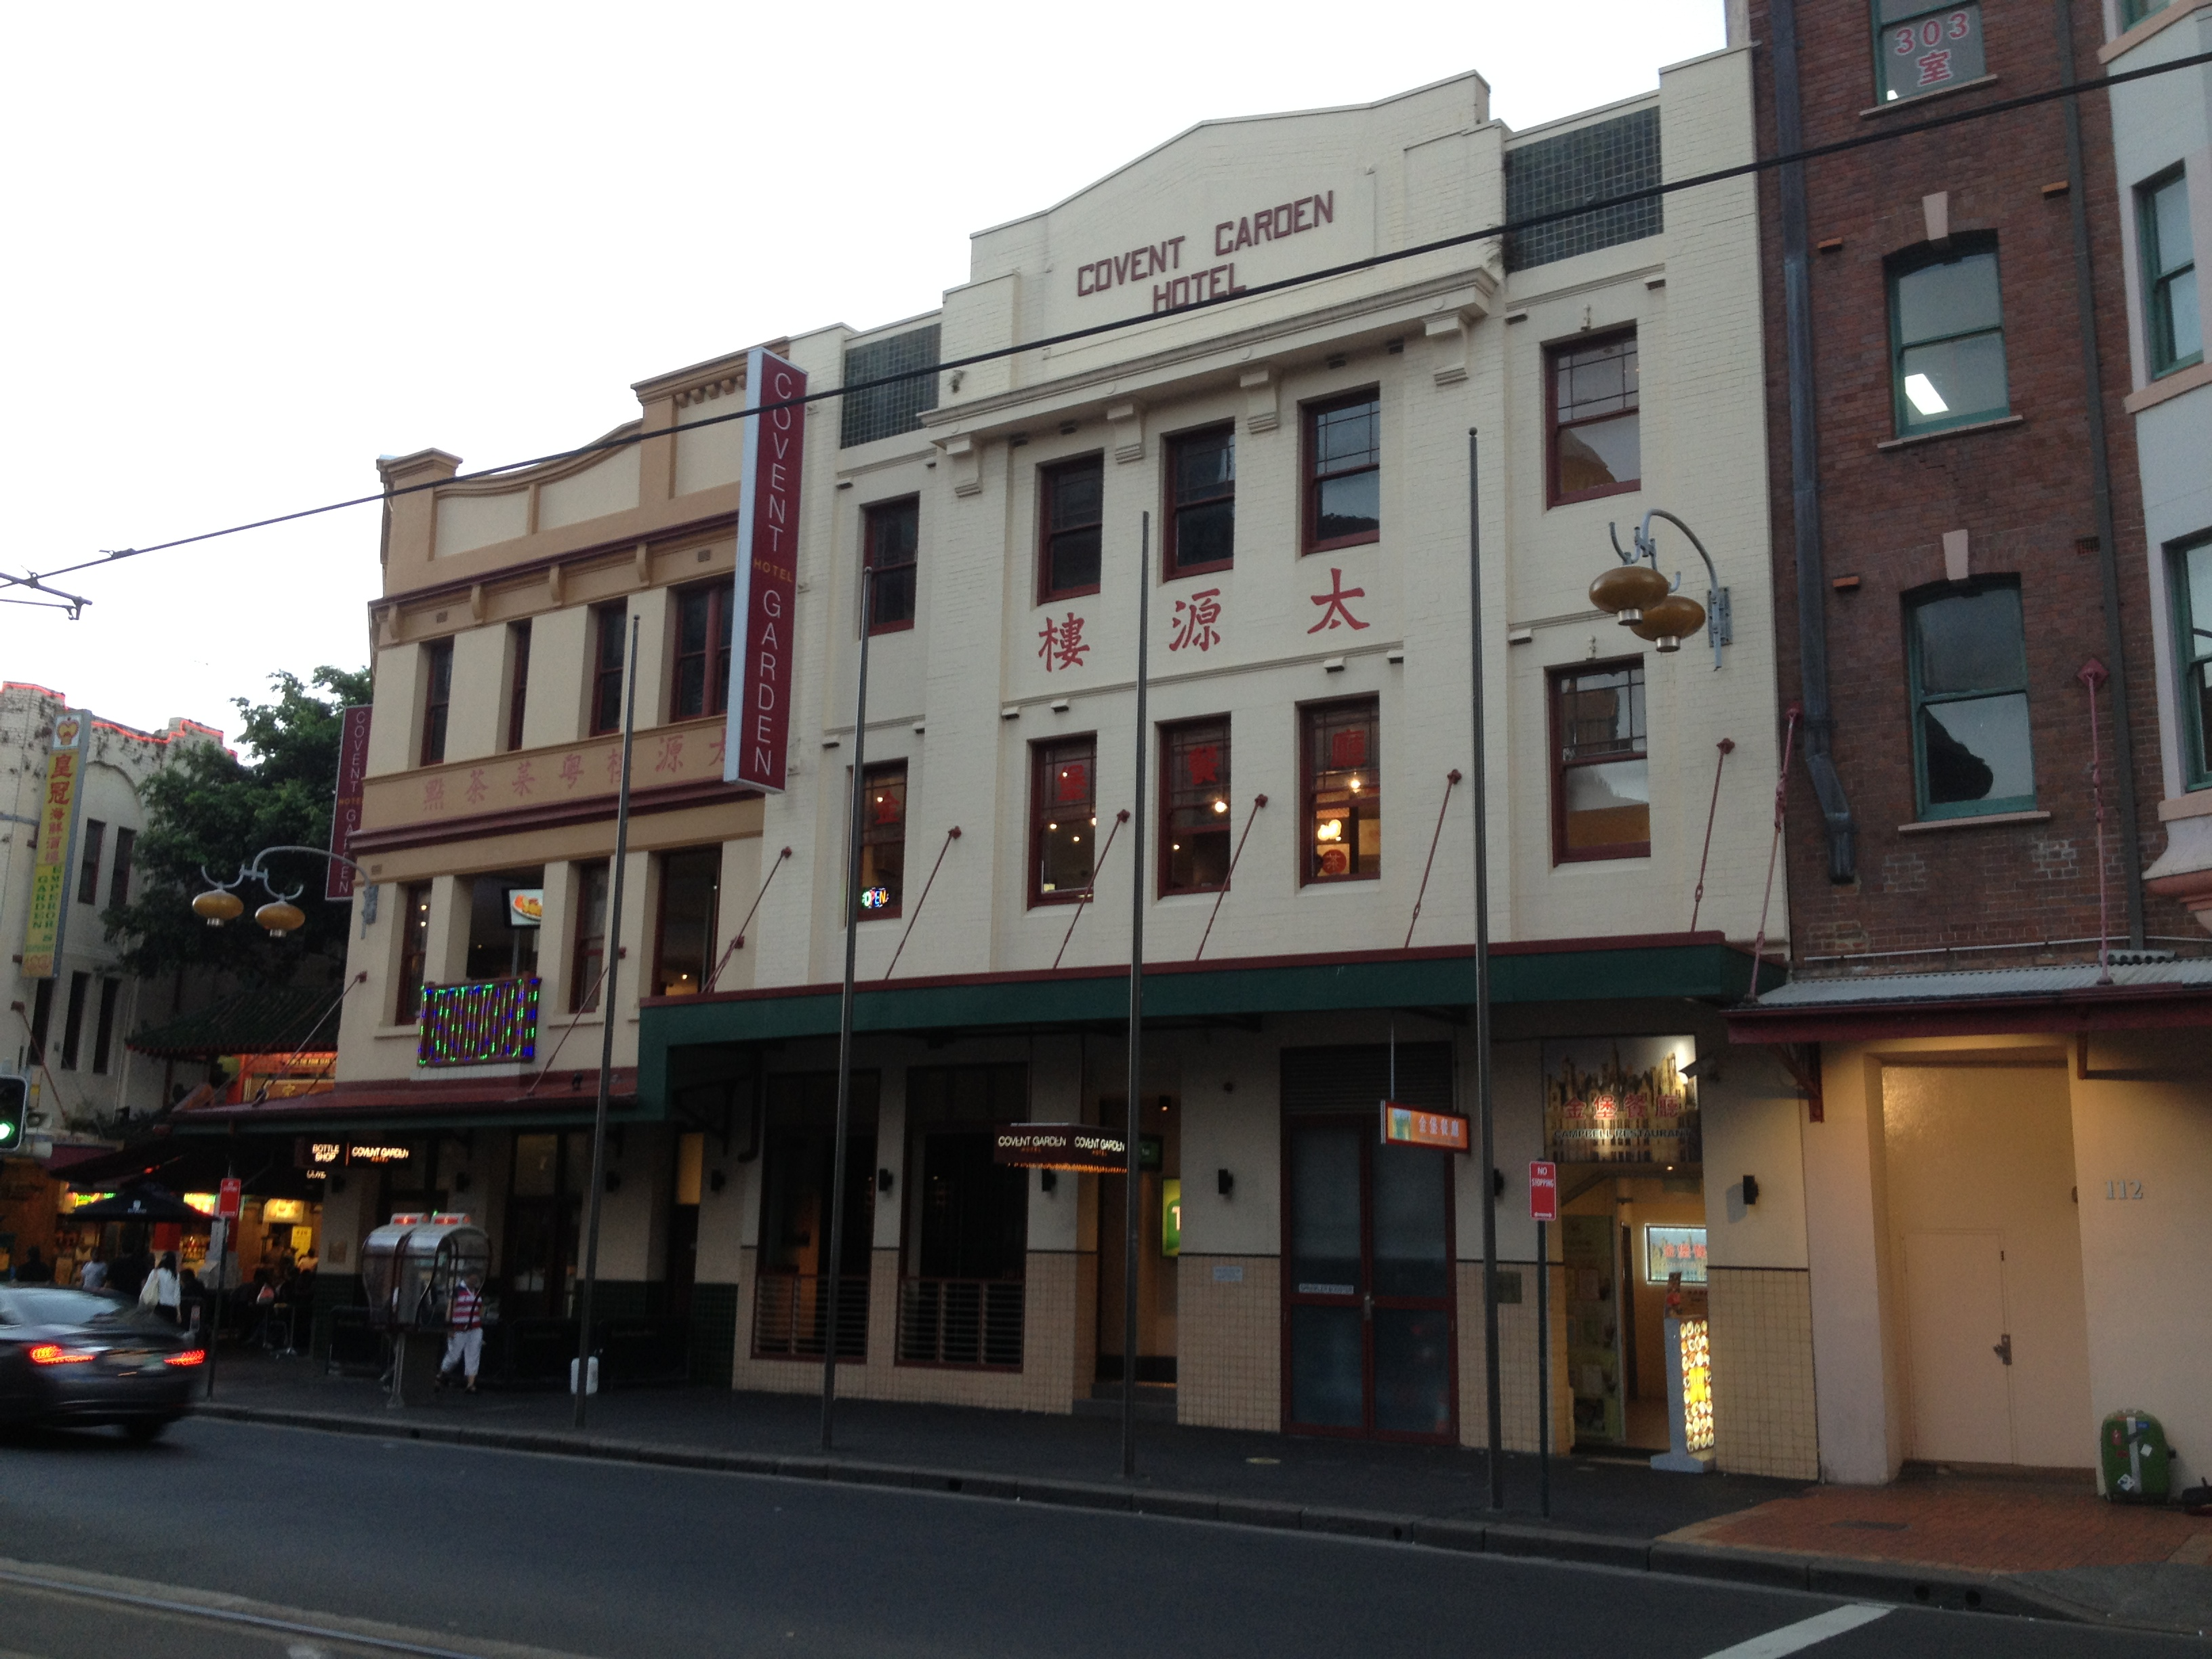 FileCovent Garden Hotel on Hay St in Sydneyjpg Wikimedia Commons